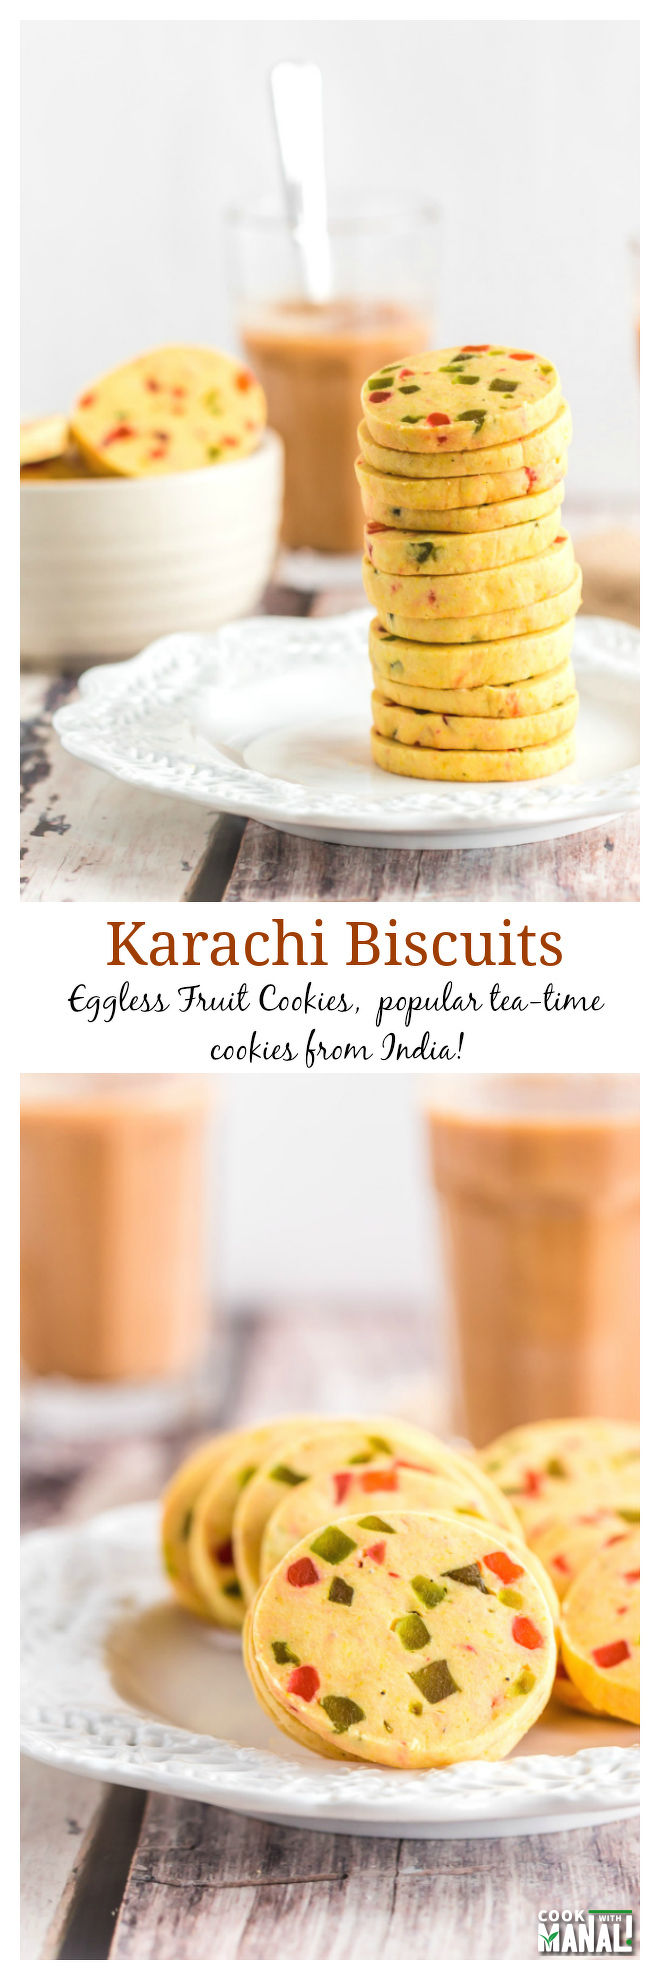 Karachi Biscuits Collage